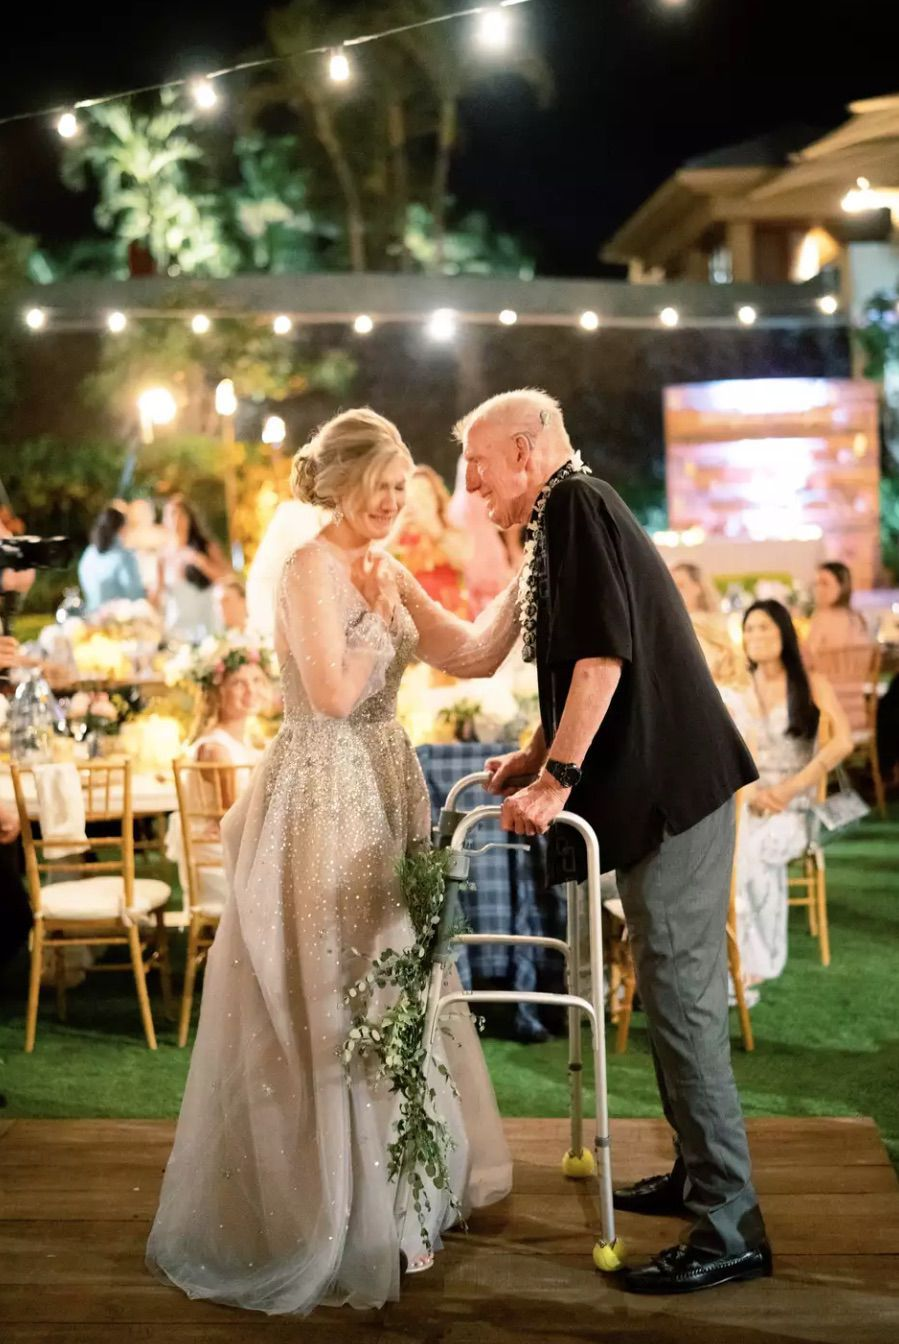 Get Your Guests Some Tissues These Father Daughter Dance Songs Will Have Everyone Tearing Up In 2020 Father Daughter Dance Songs Father Daughter Wedding Dance Father Daughter Wedding